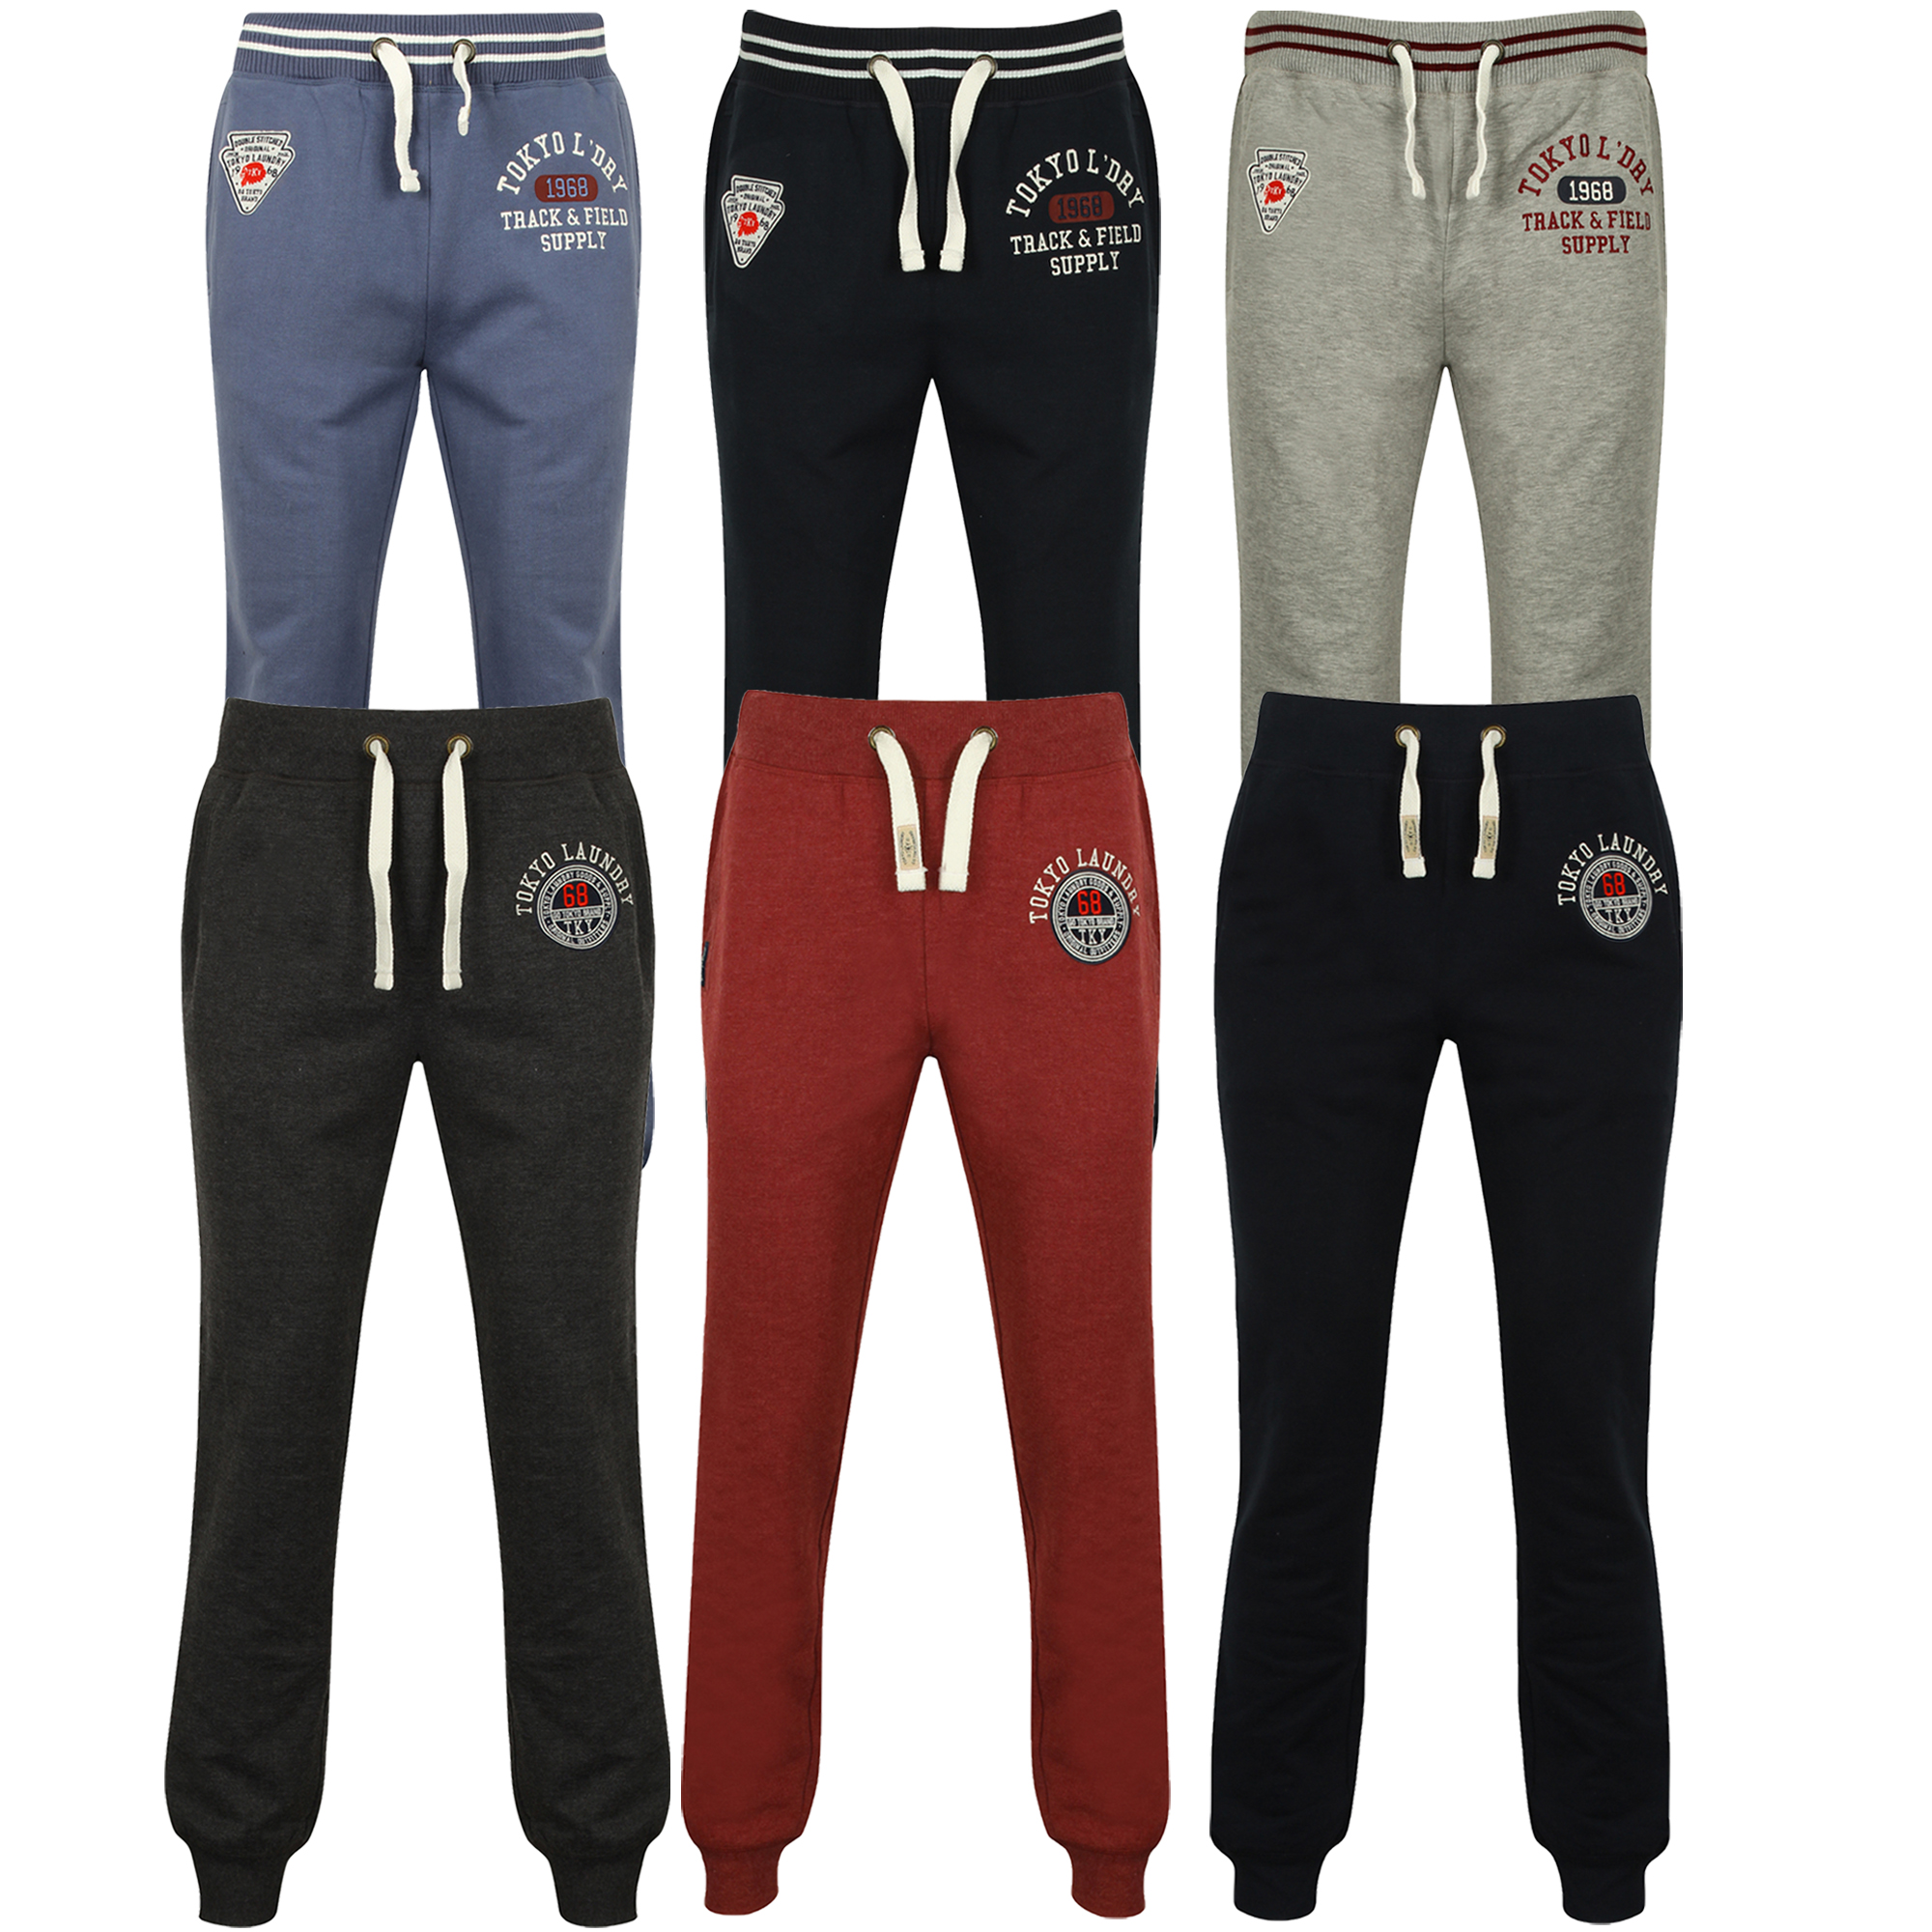 clearance sale free shipping cheapest price Details about Mens Bottoms Tokyo Laundry Trousers Pants Jogging Running  Fleece Lined Winter